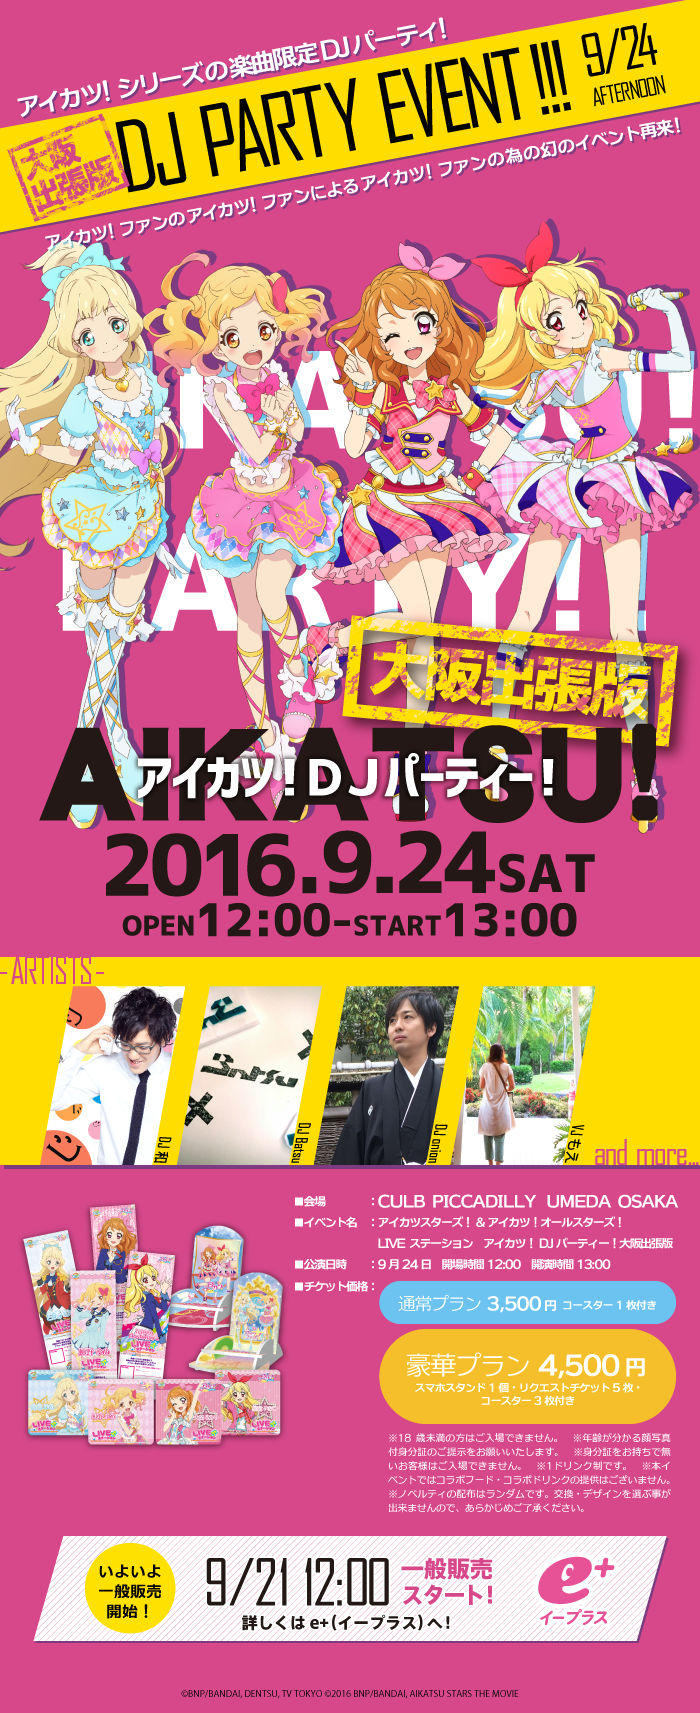 DJ PARTY EVENT!!! 9/24 AFTERNOON